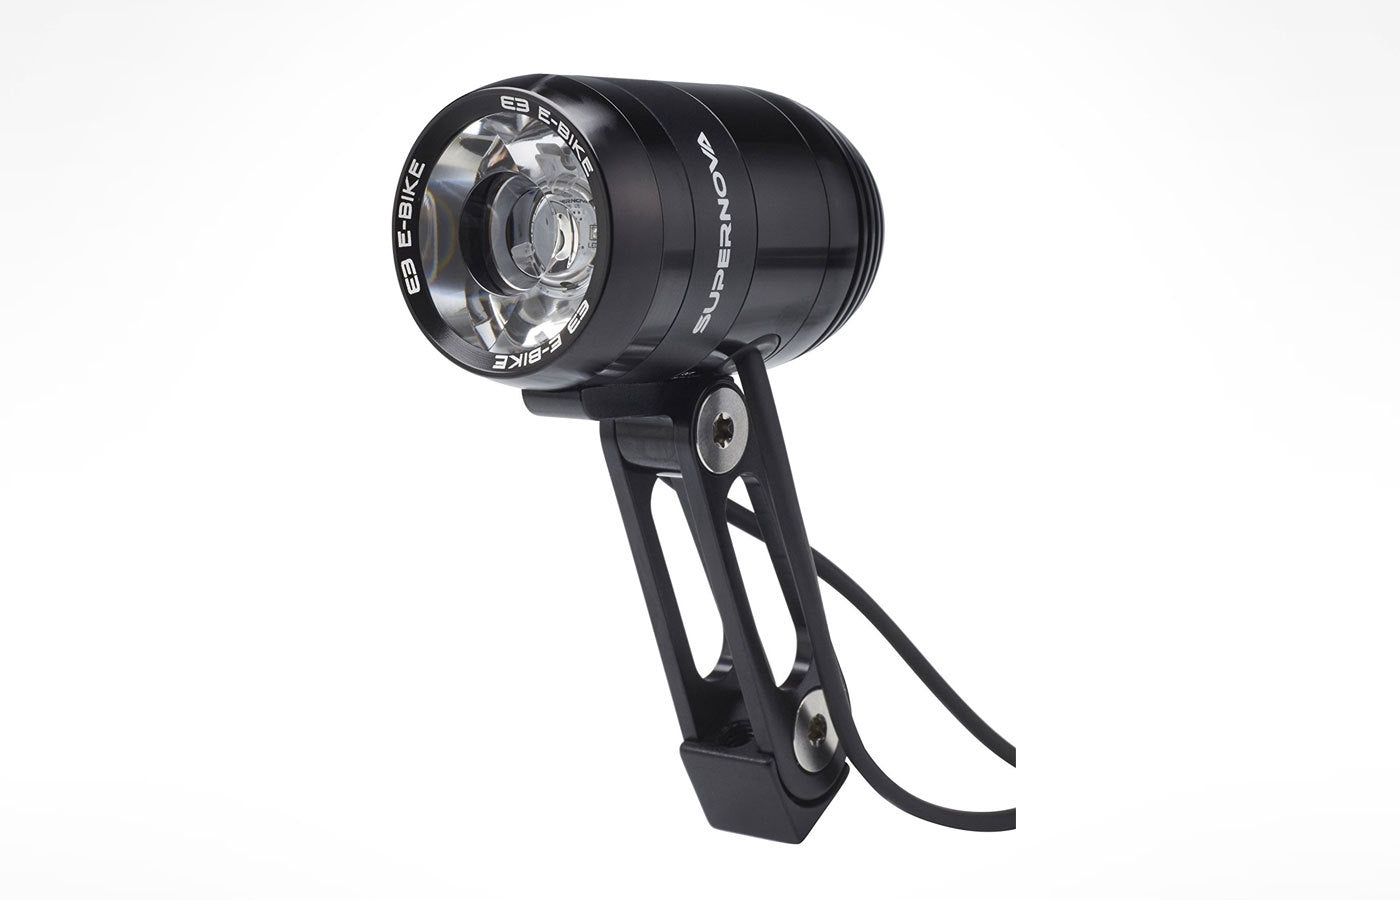 Supernova V1260 E-bike Light